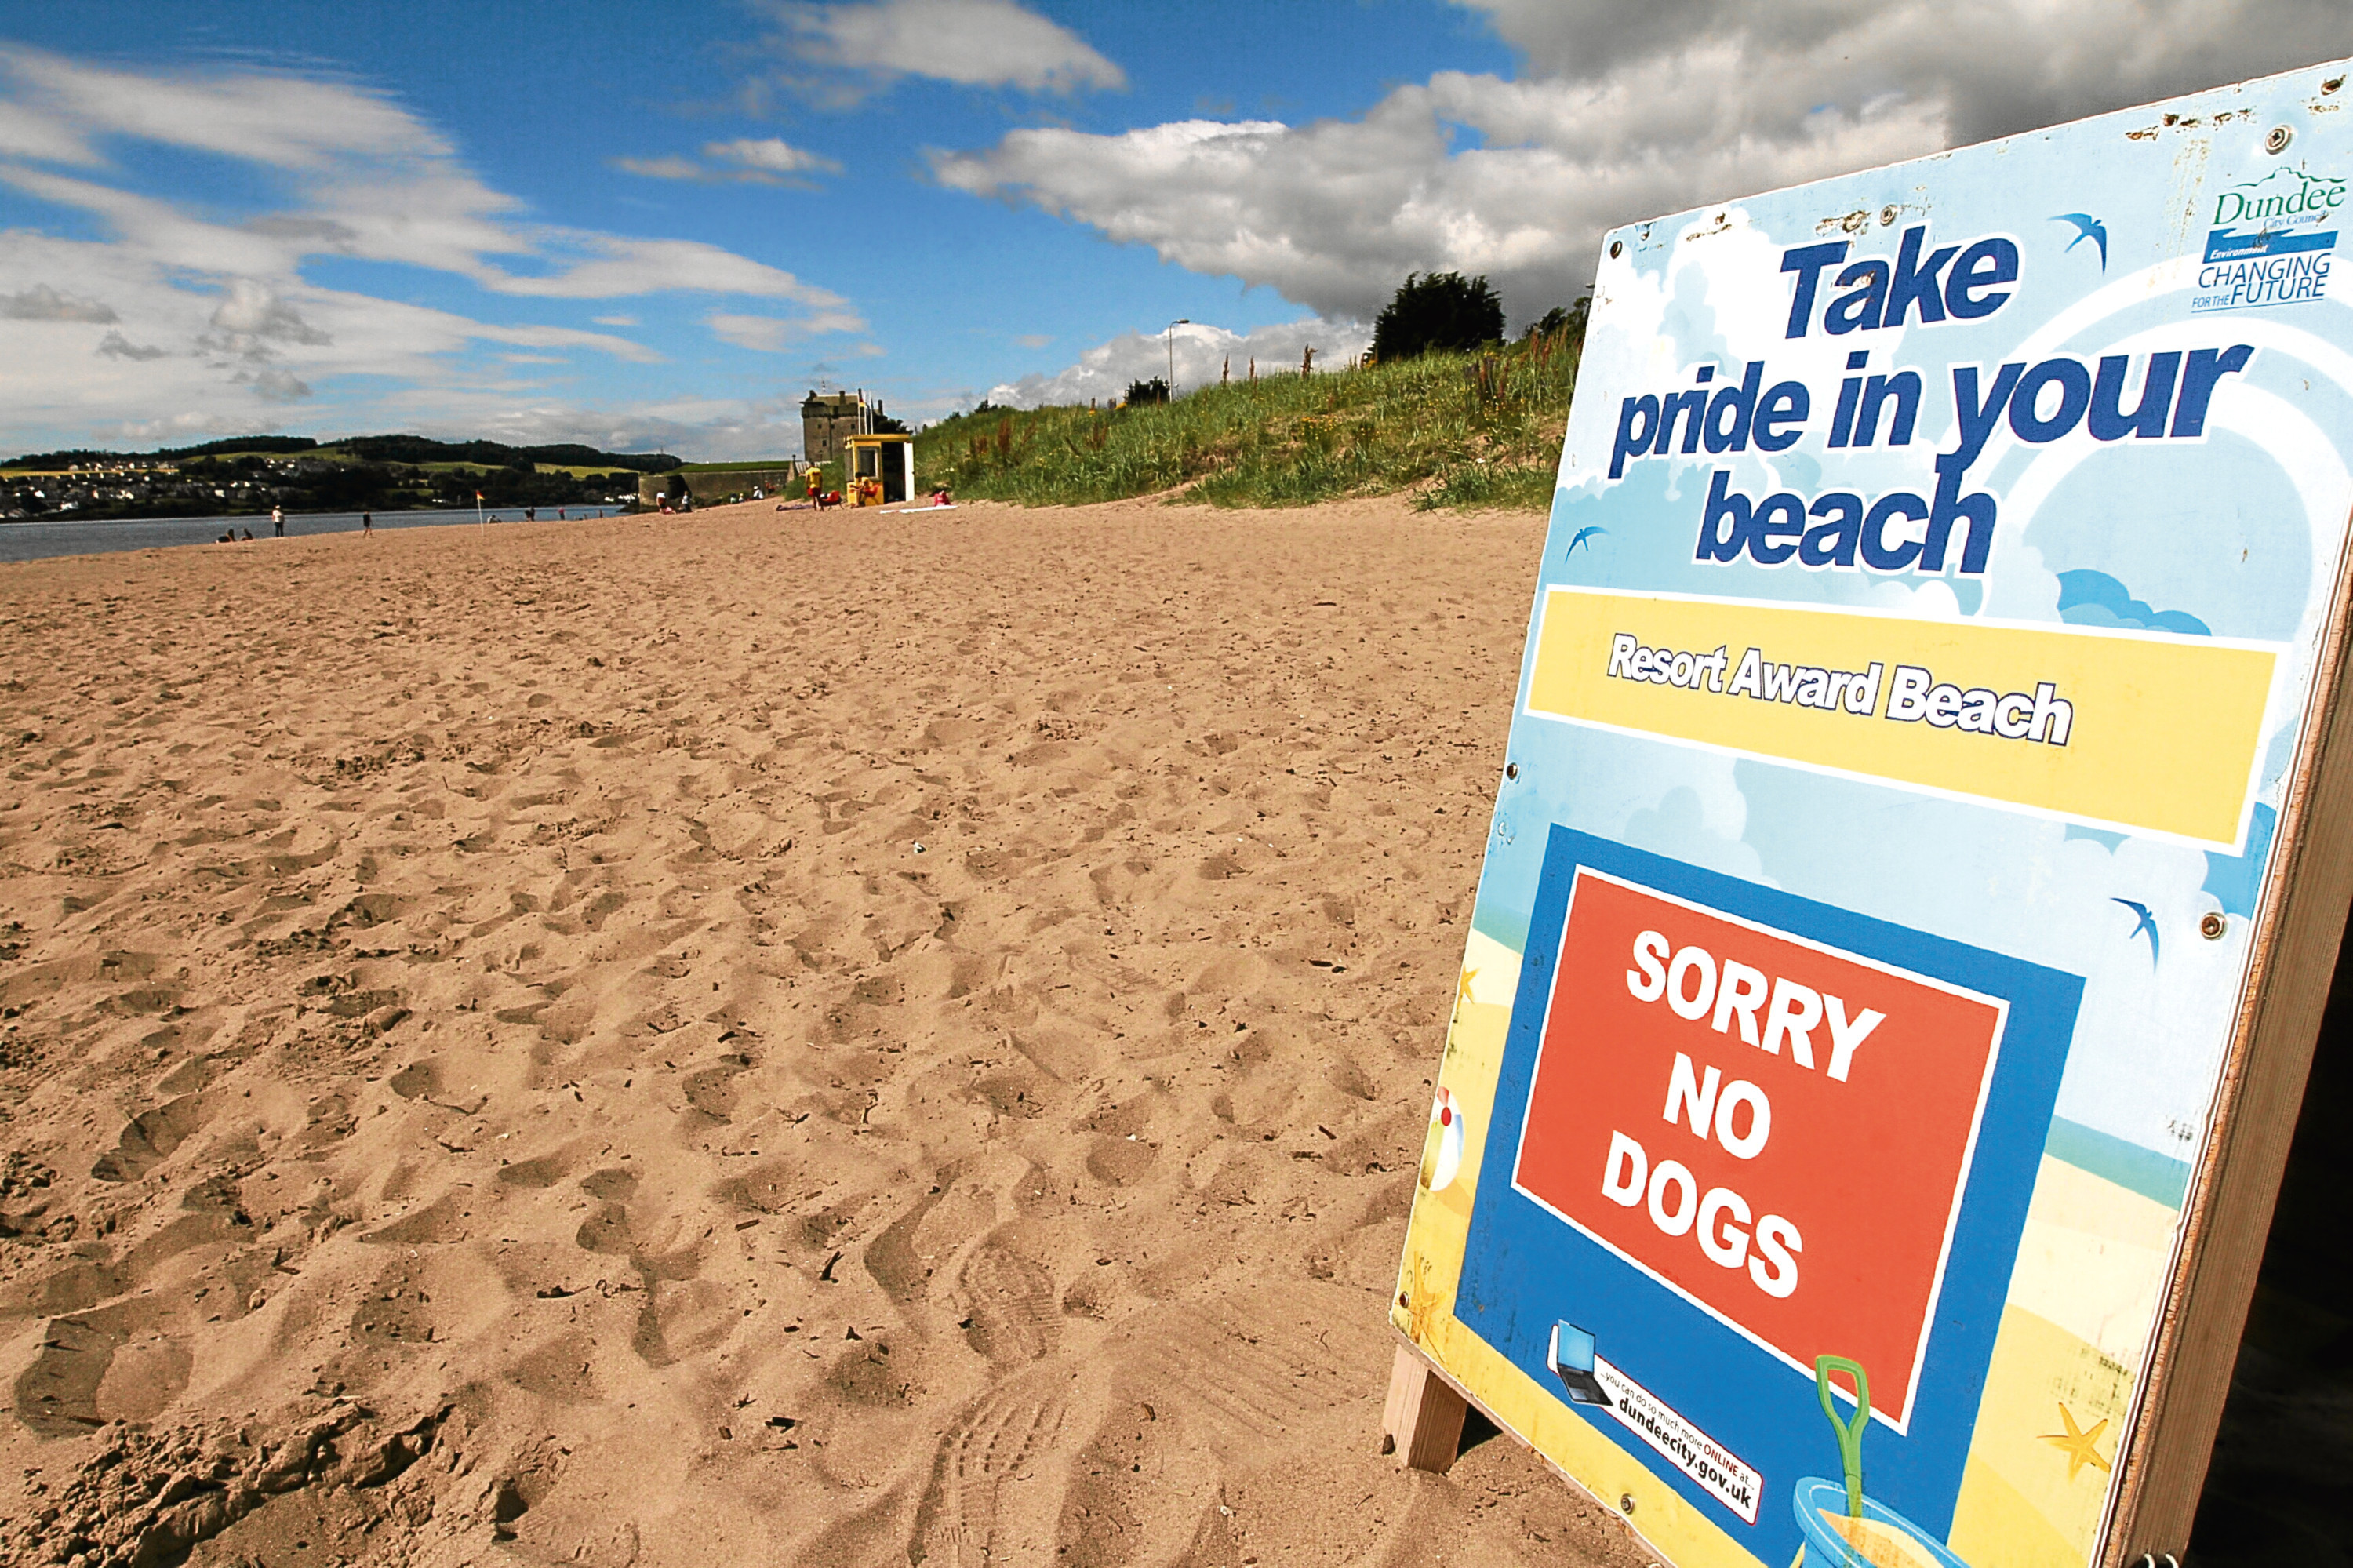 Broughty Ferry beach, where one of the events will be hosted.